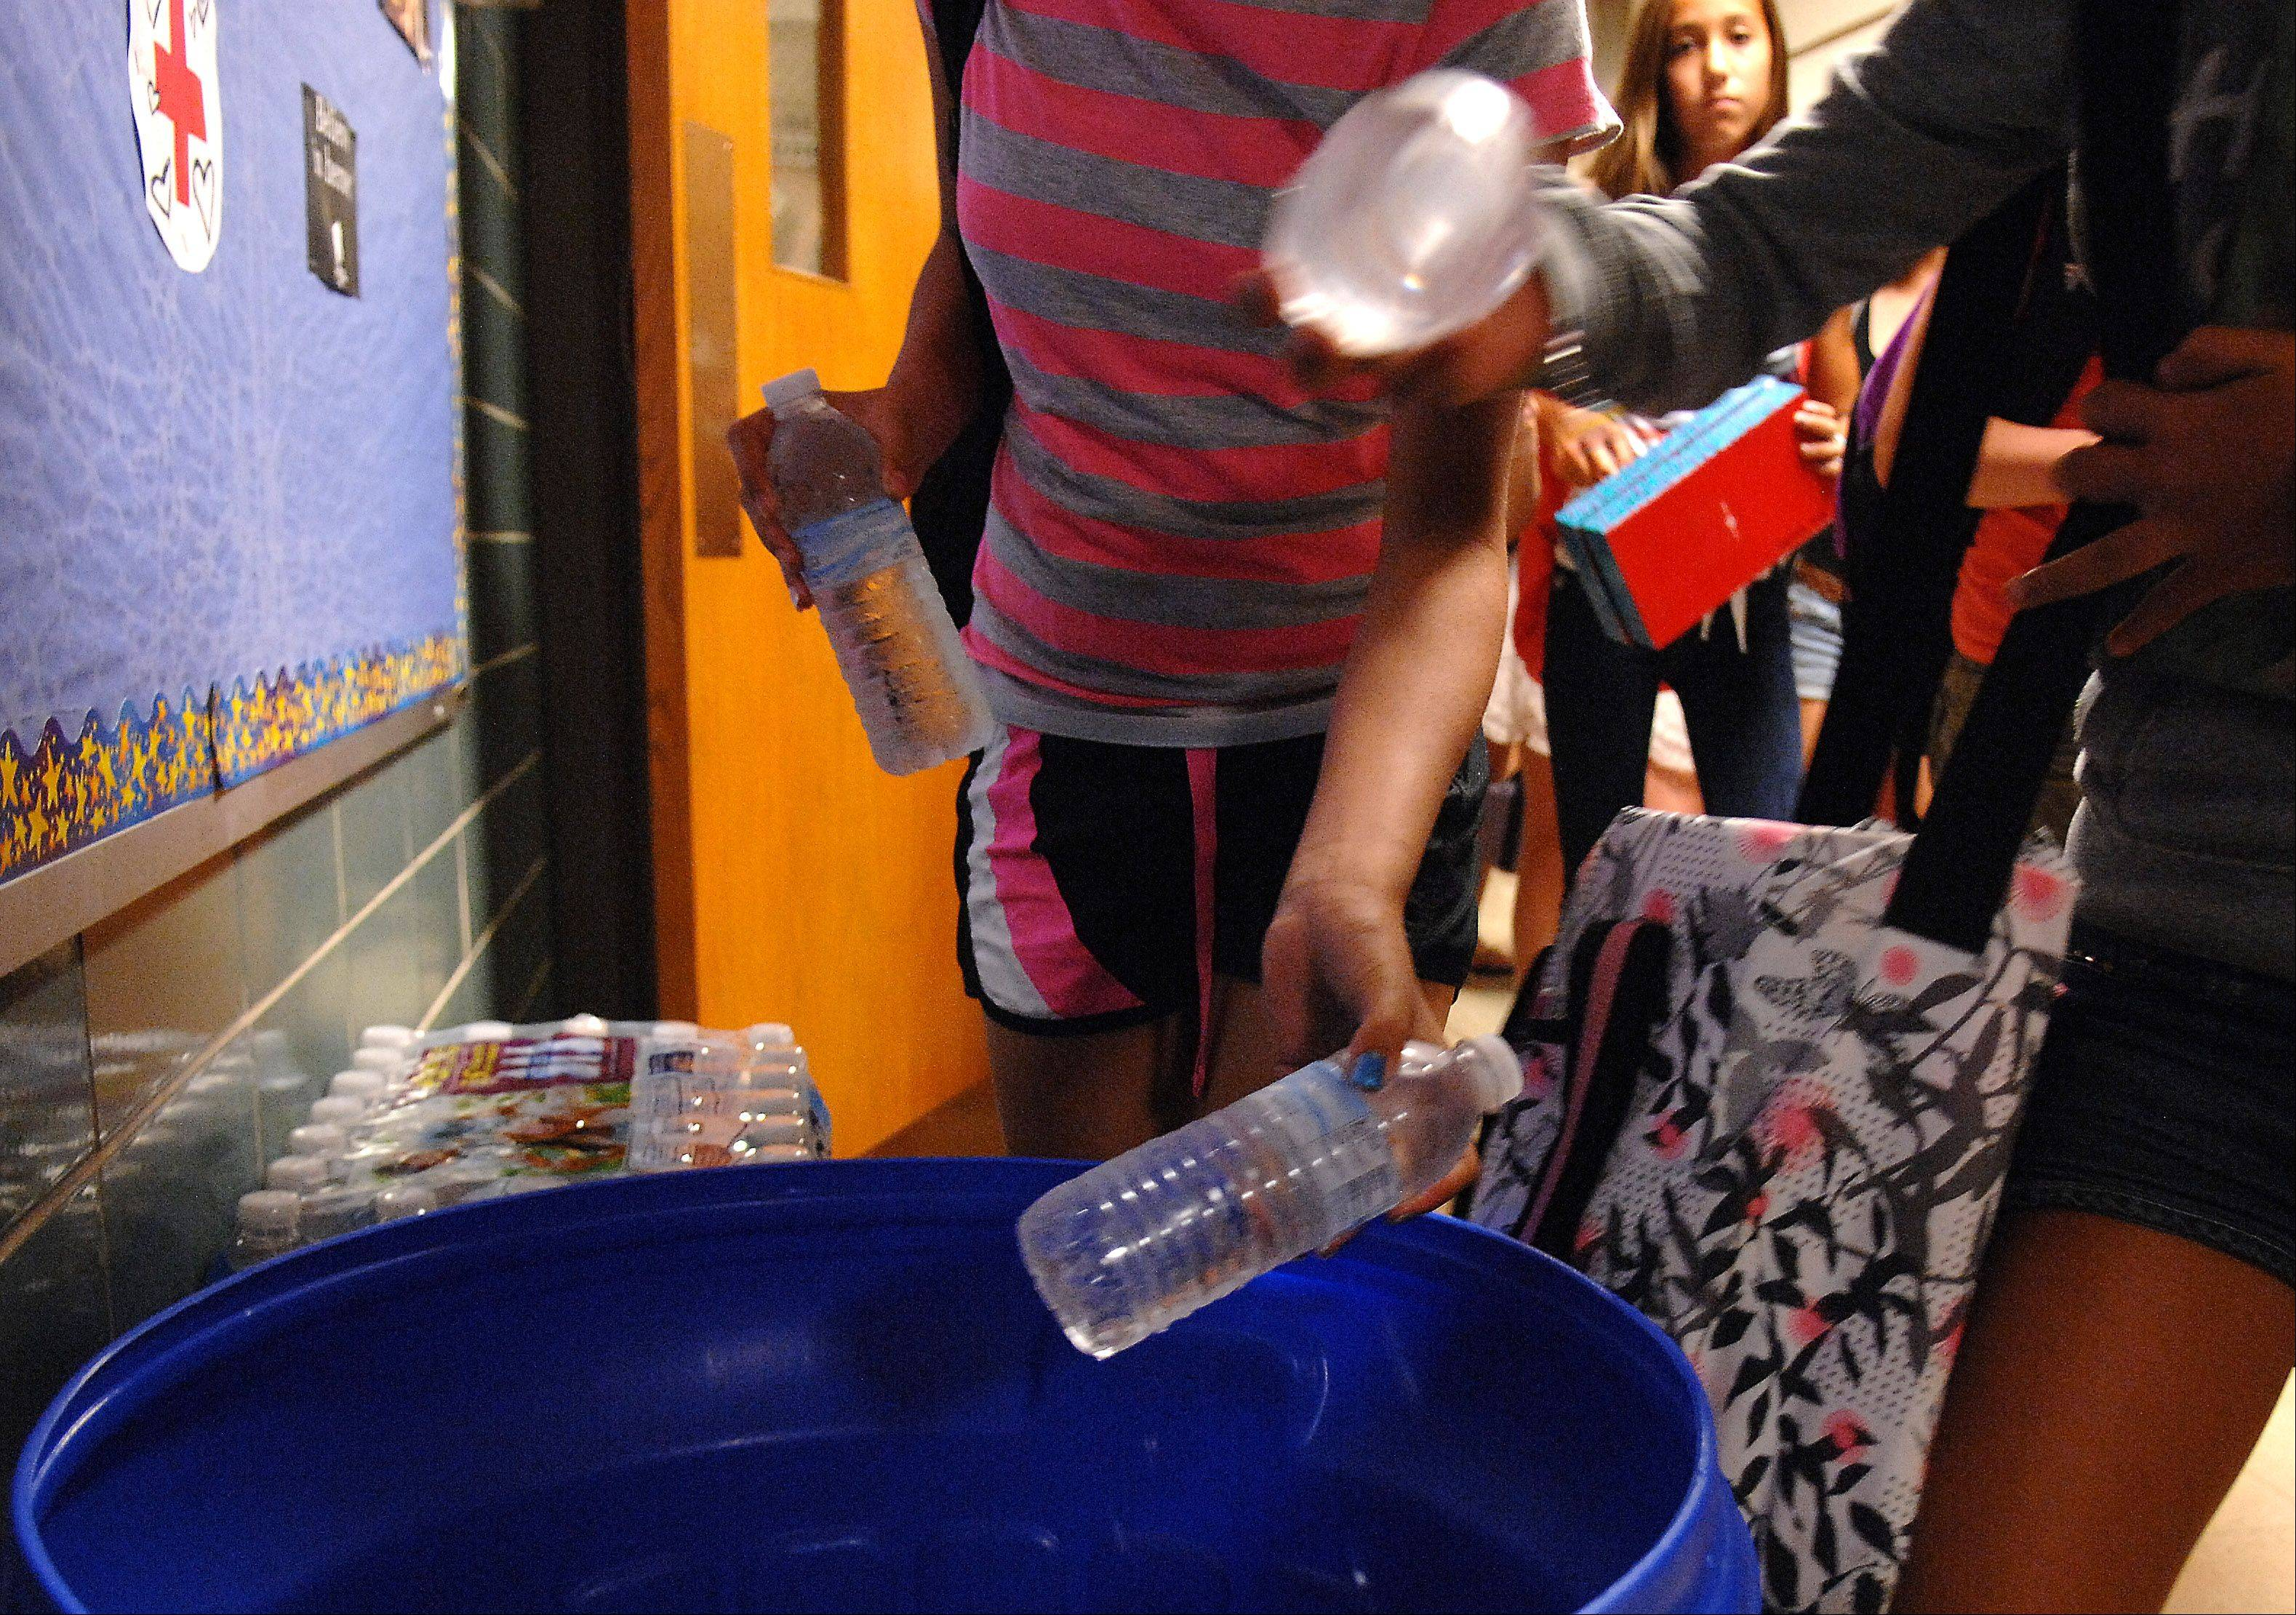 Thompson Middle School students grab bottles of water from icy buckets in the hallway on their way out for an early dismissal Tuesday in St. Charles.